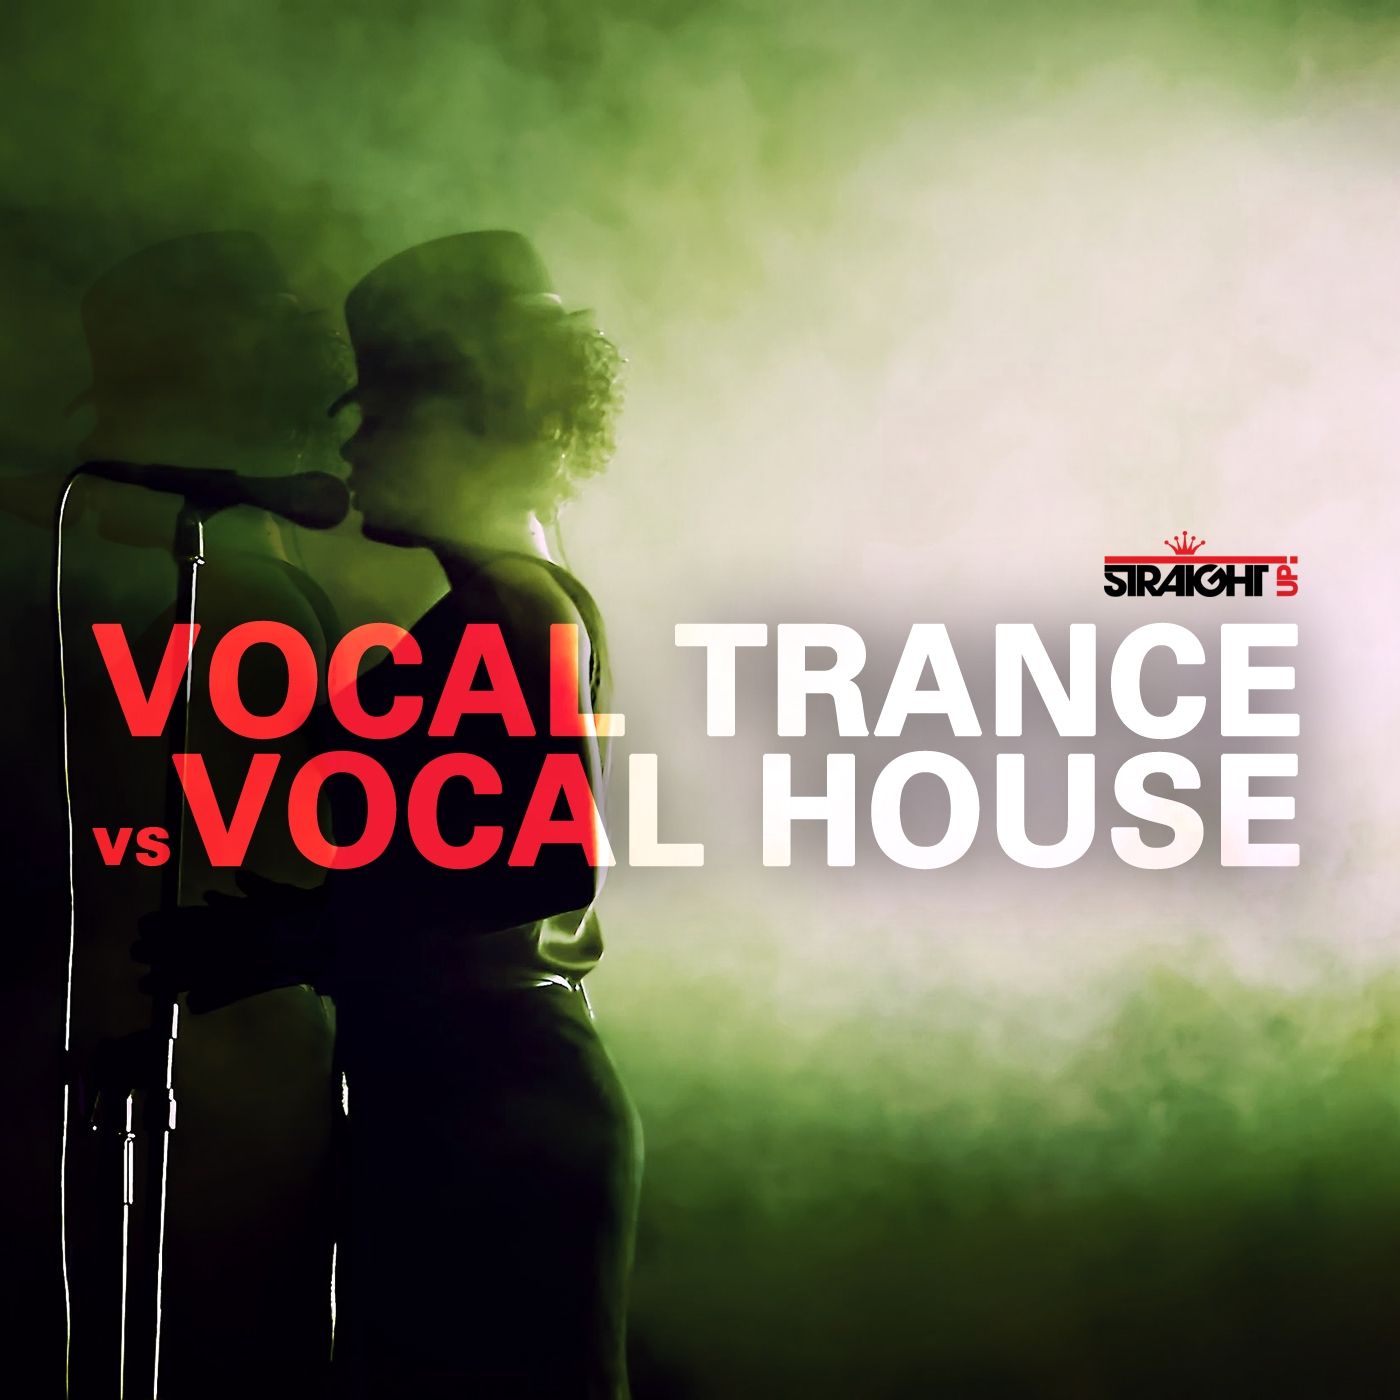 Vocal trance vs vocal house now available in stores for Vocal house songs